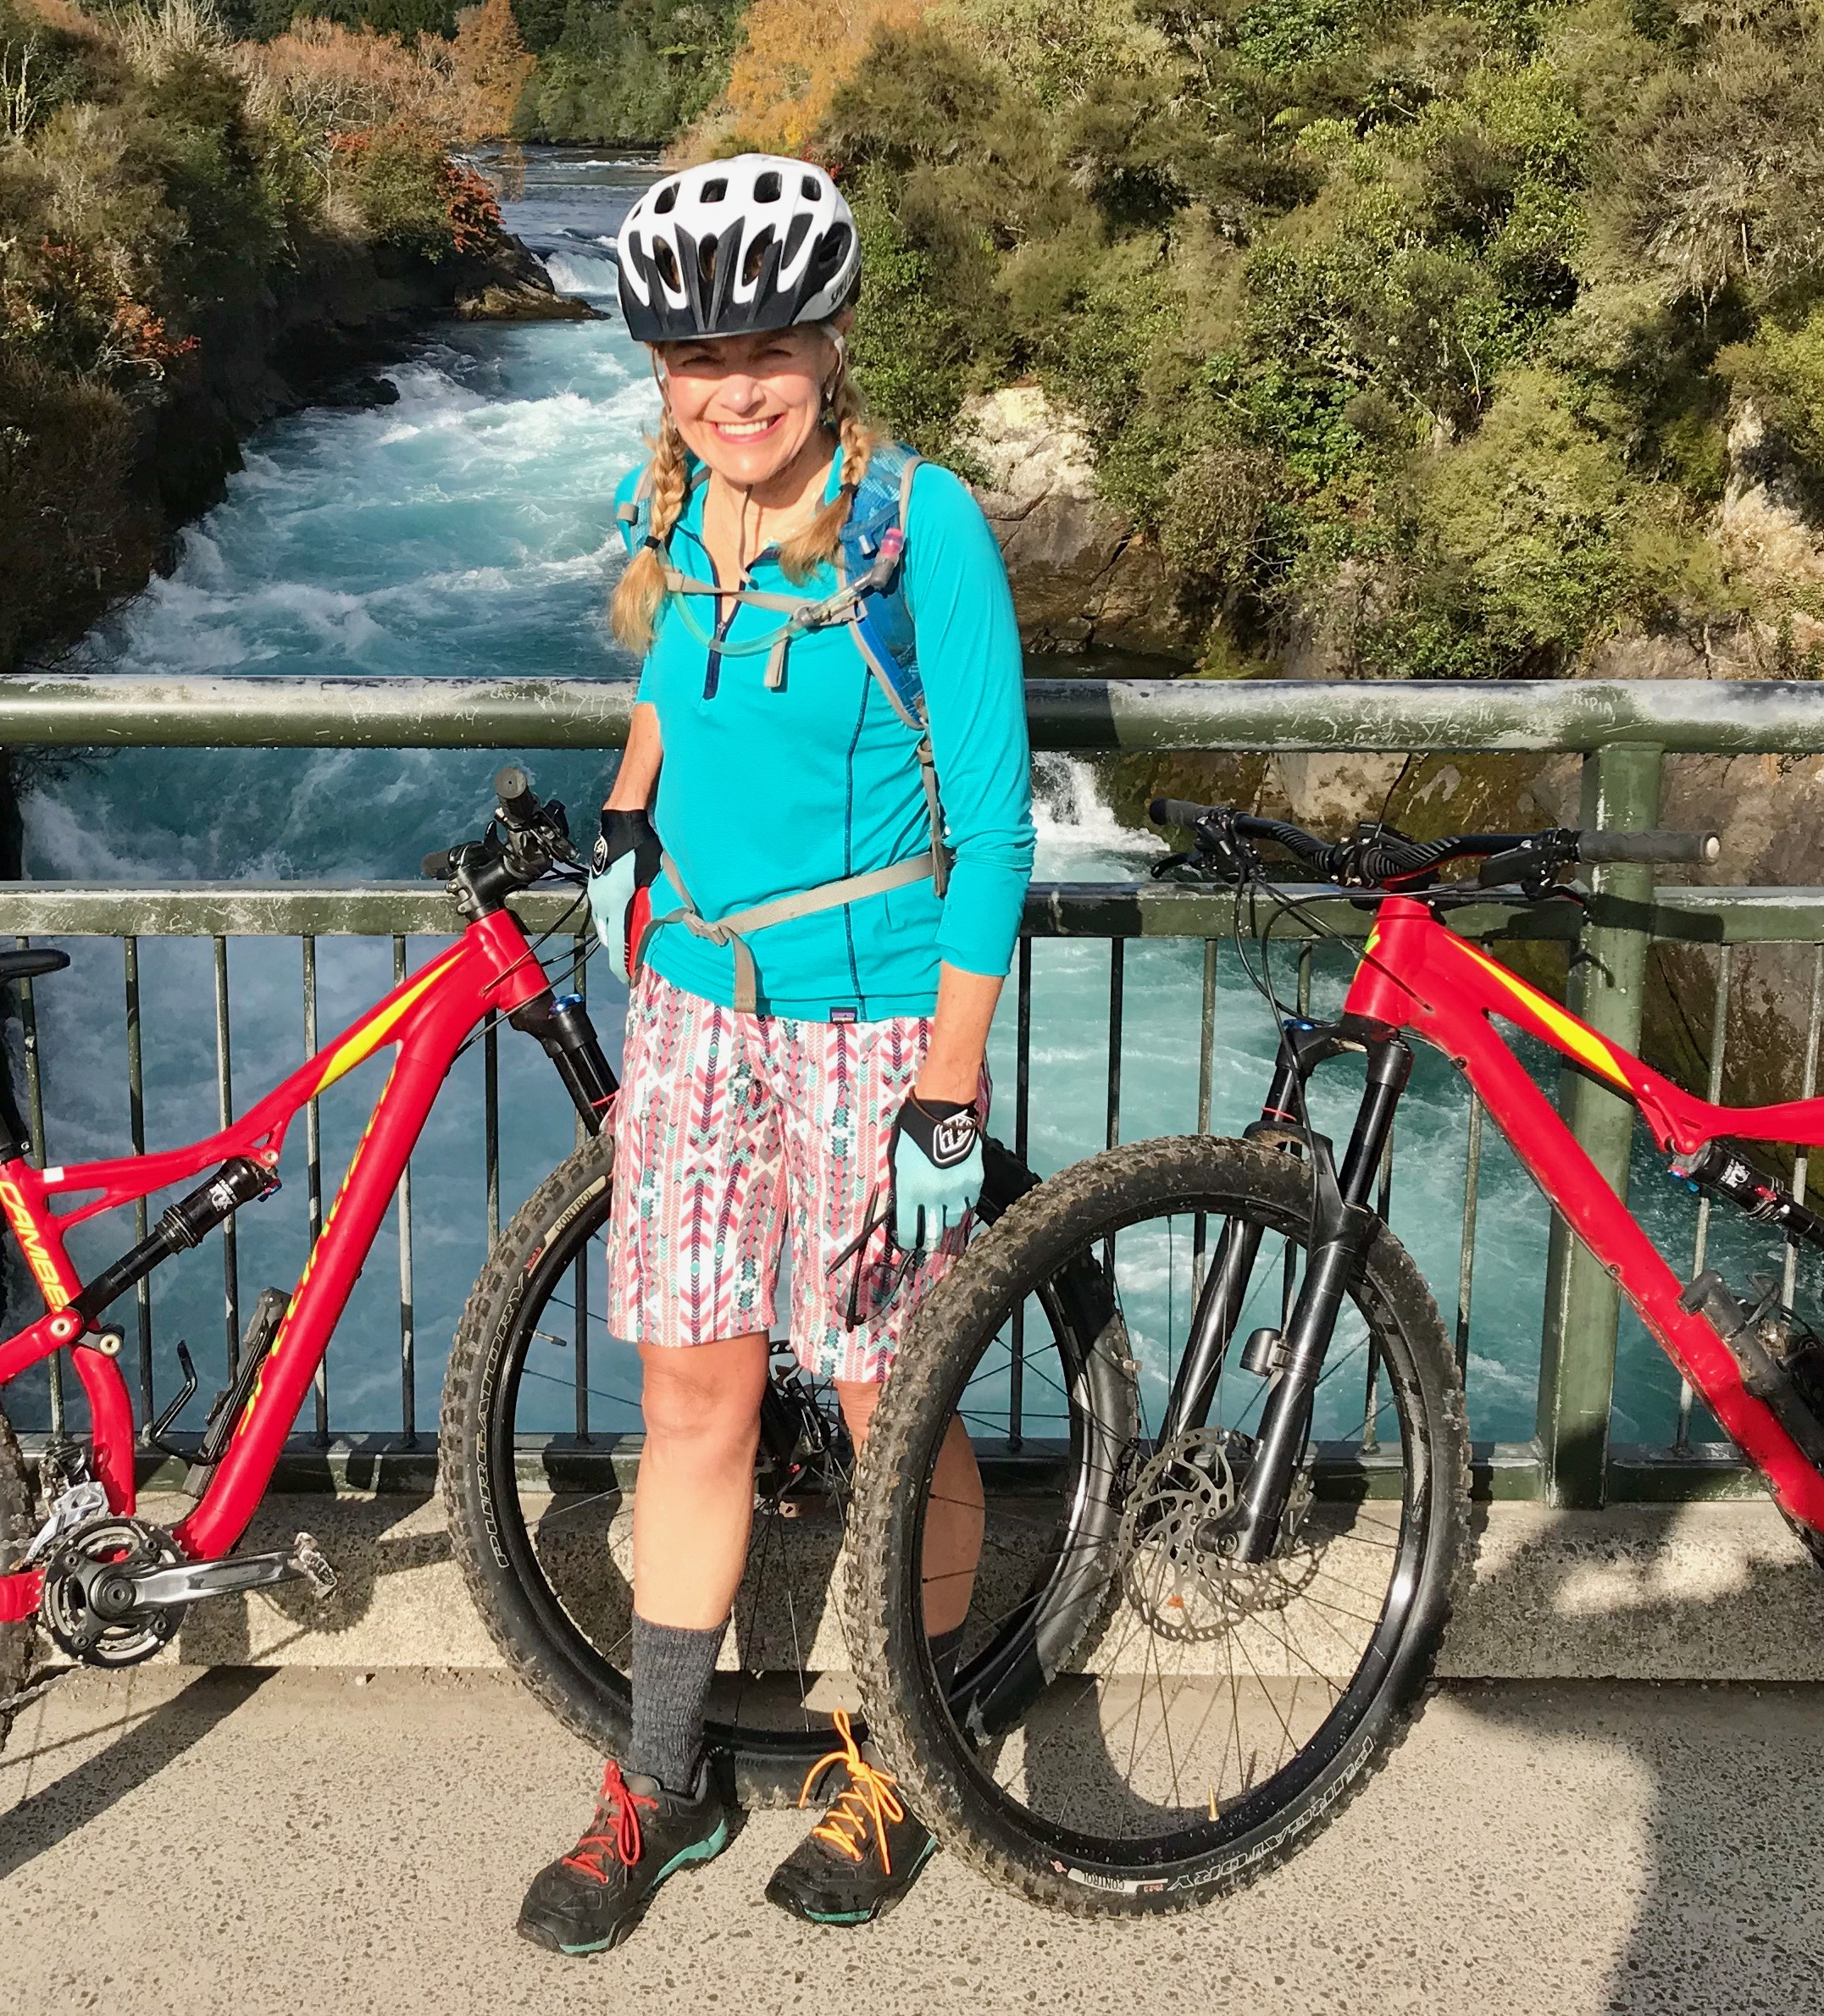 The famous Huka Falls are in the background, Craters of the Moon bike park in Lake Taupo is a purpose-built bike park with one purpose: to provide a super fun day riding singletrack!